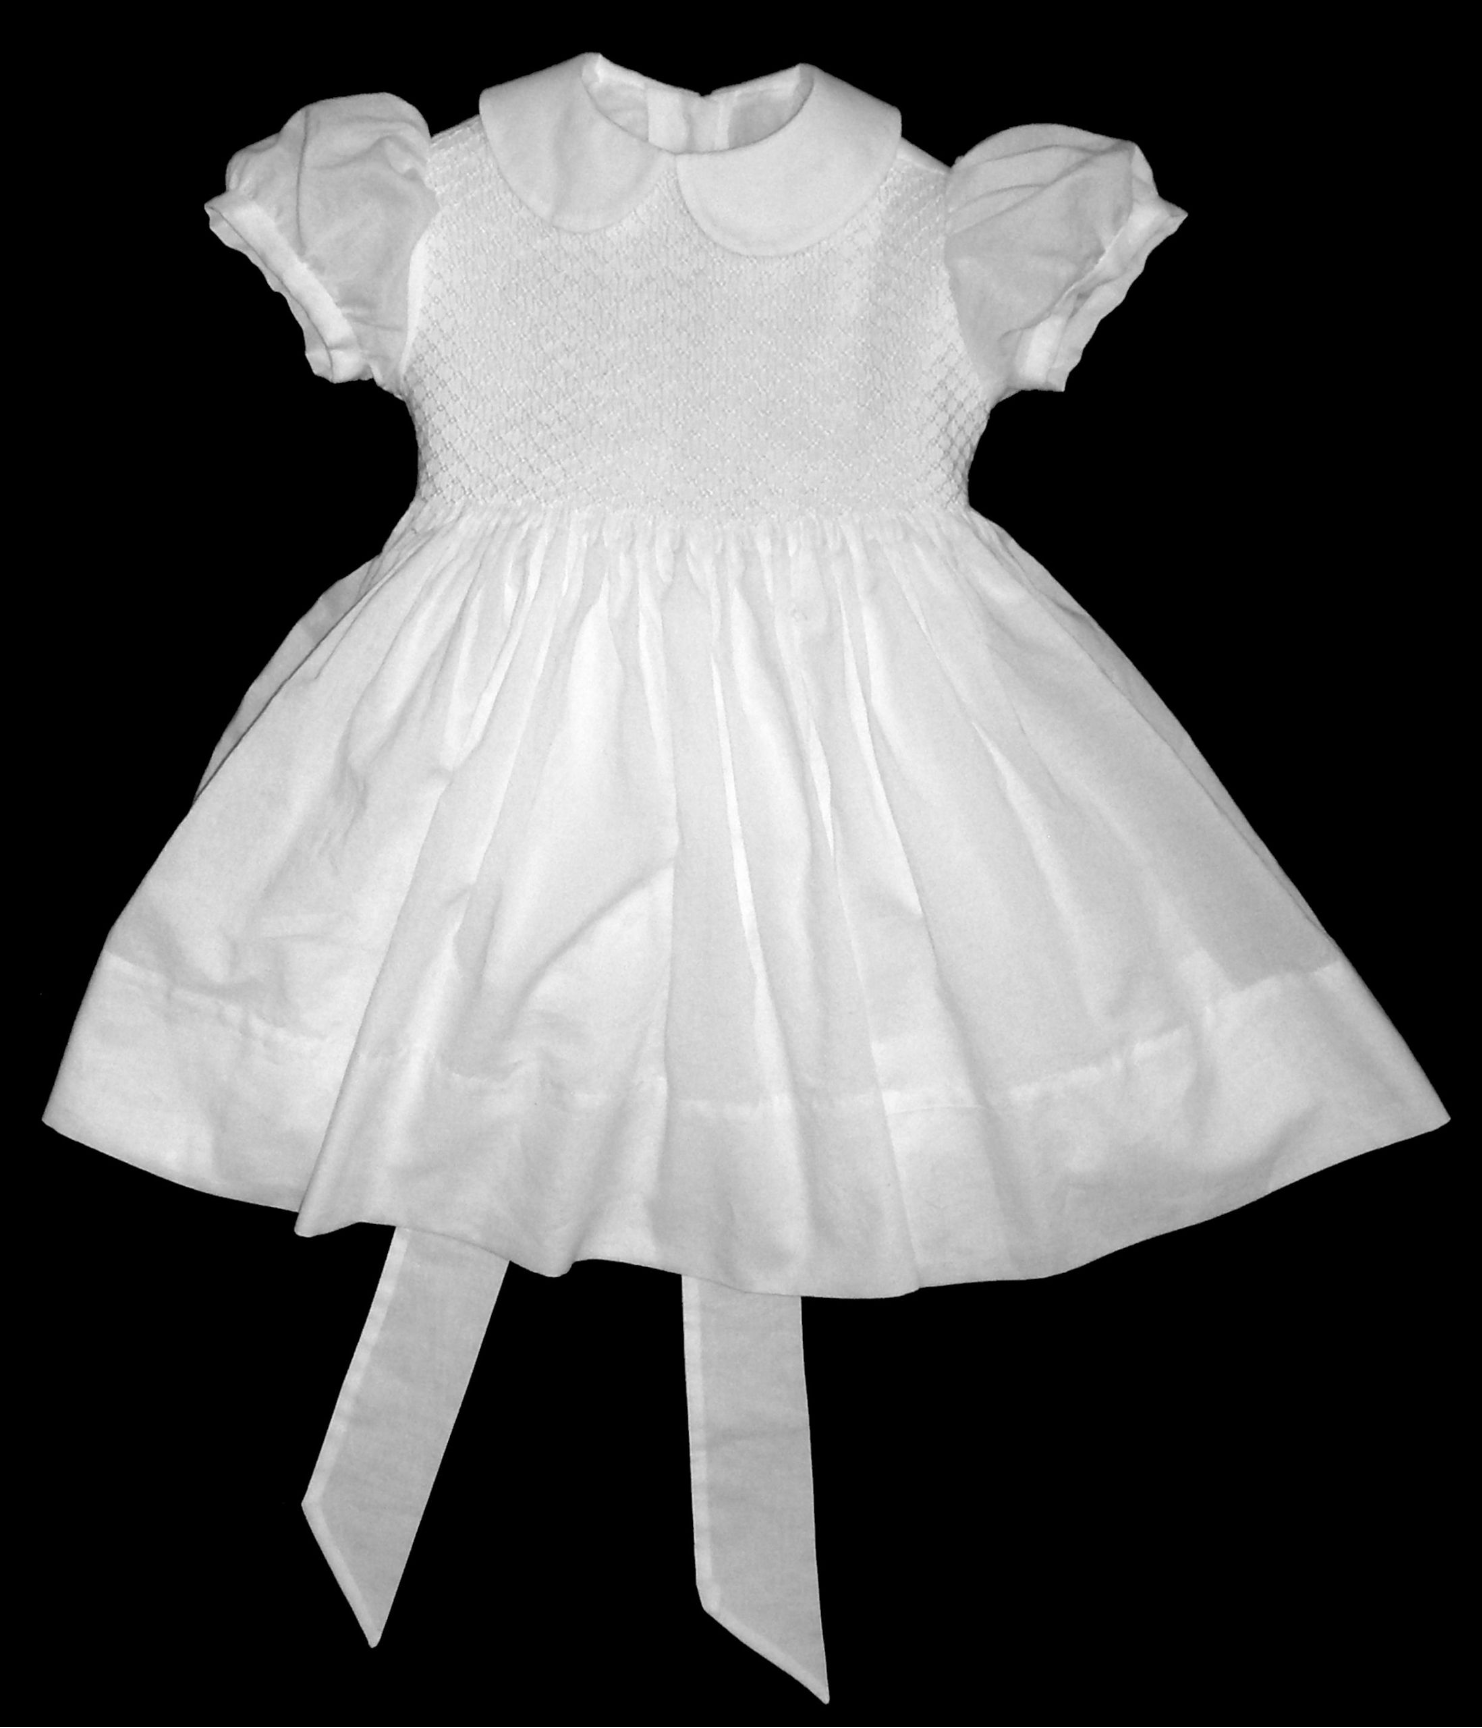 Smocked Dress - Gretchen